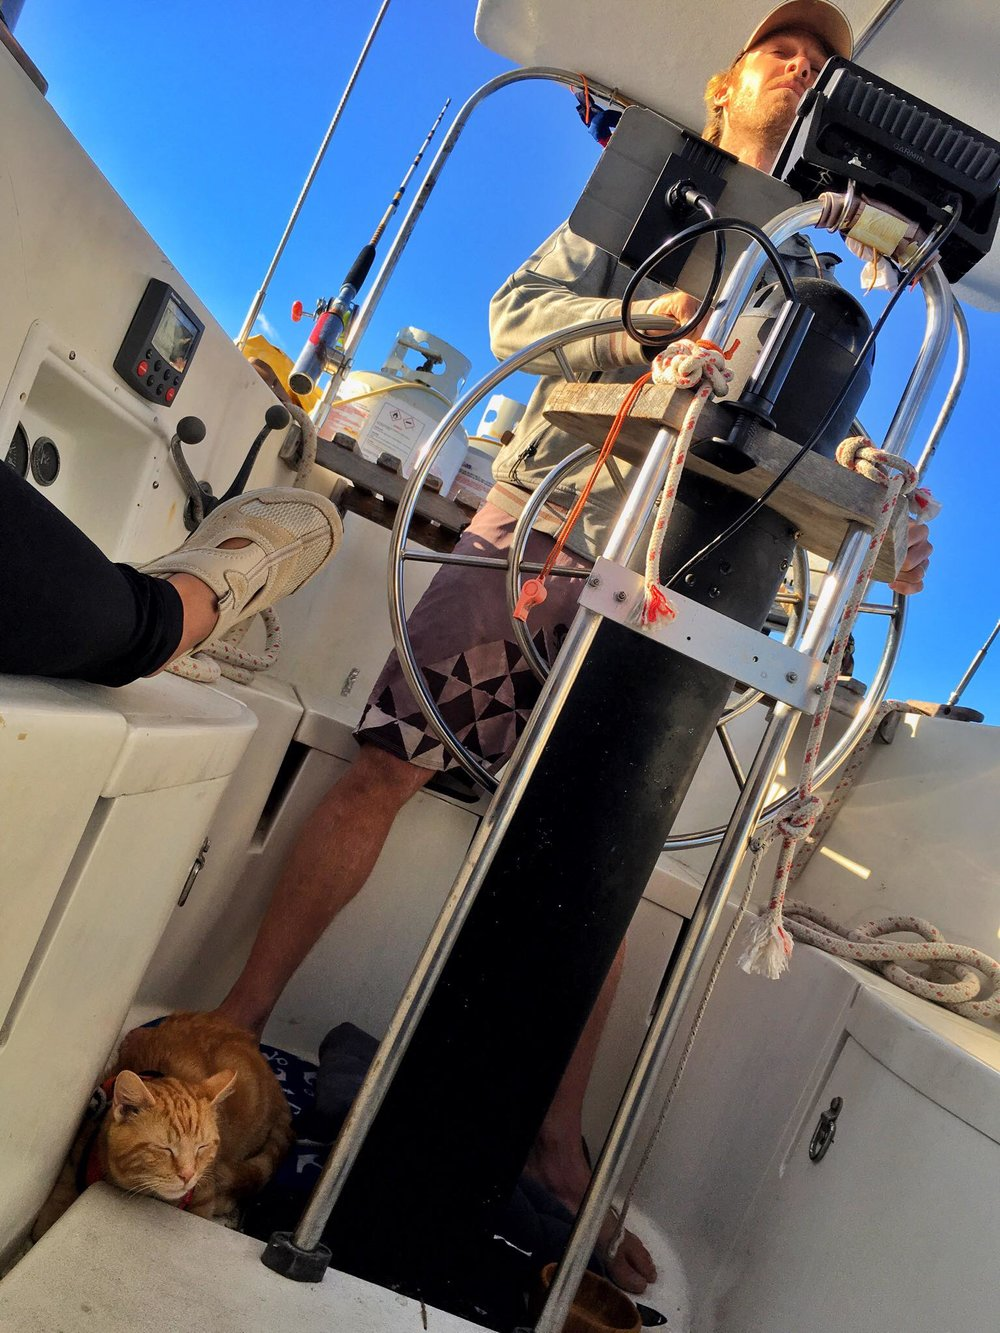 Crossing The Great Bahama Banks - Our Overnight Passage from Bimini to Nassau, The Bahamas - Captain's Log #2